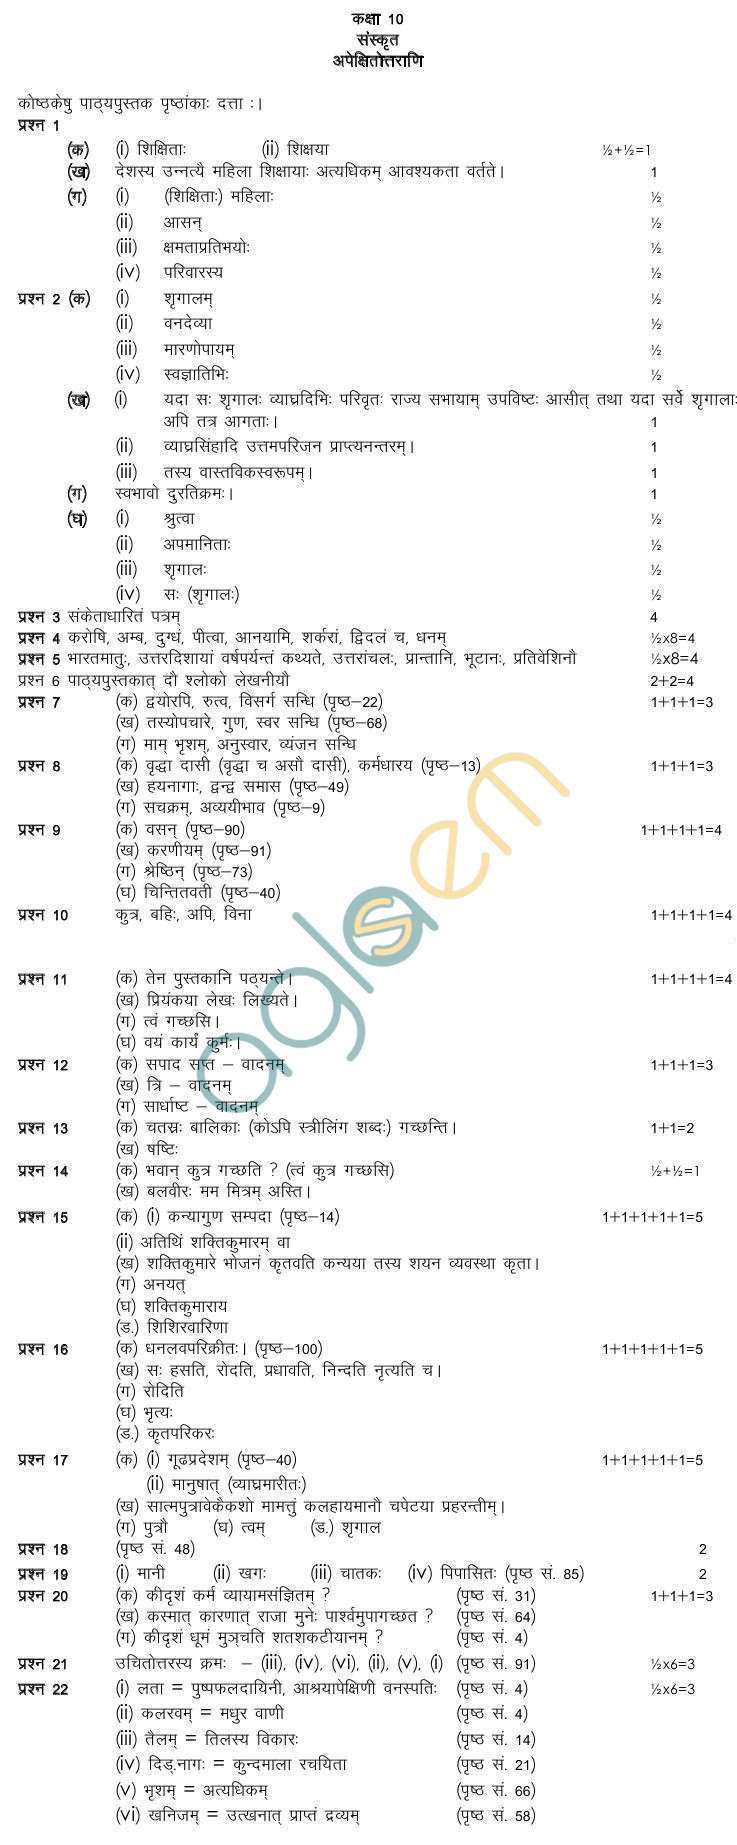 Rajasthan Board Class 10 Sanskrit T. L. Model Question Paper